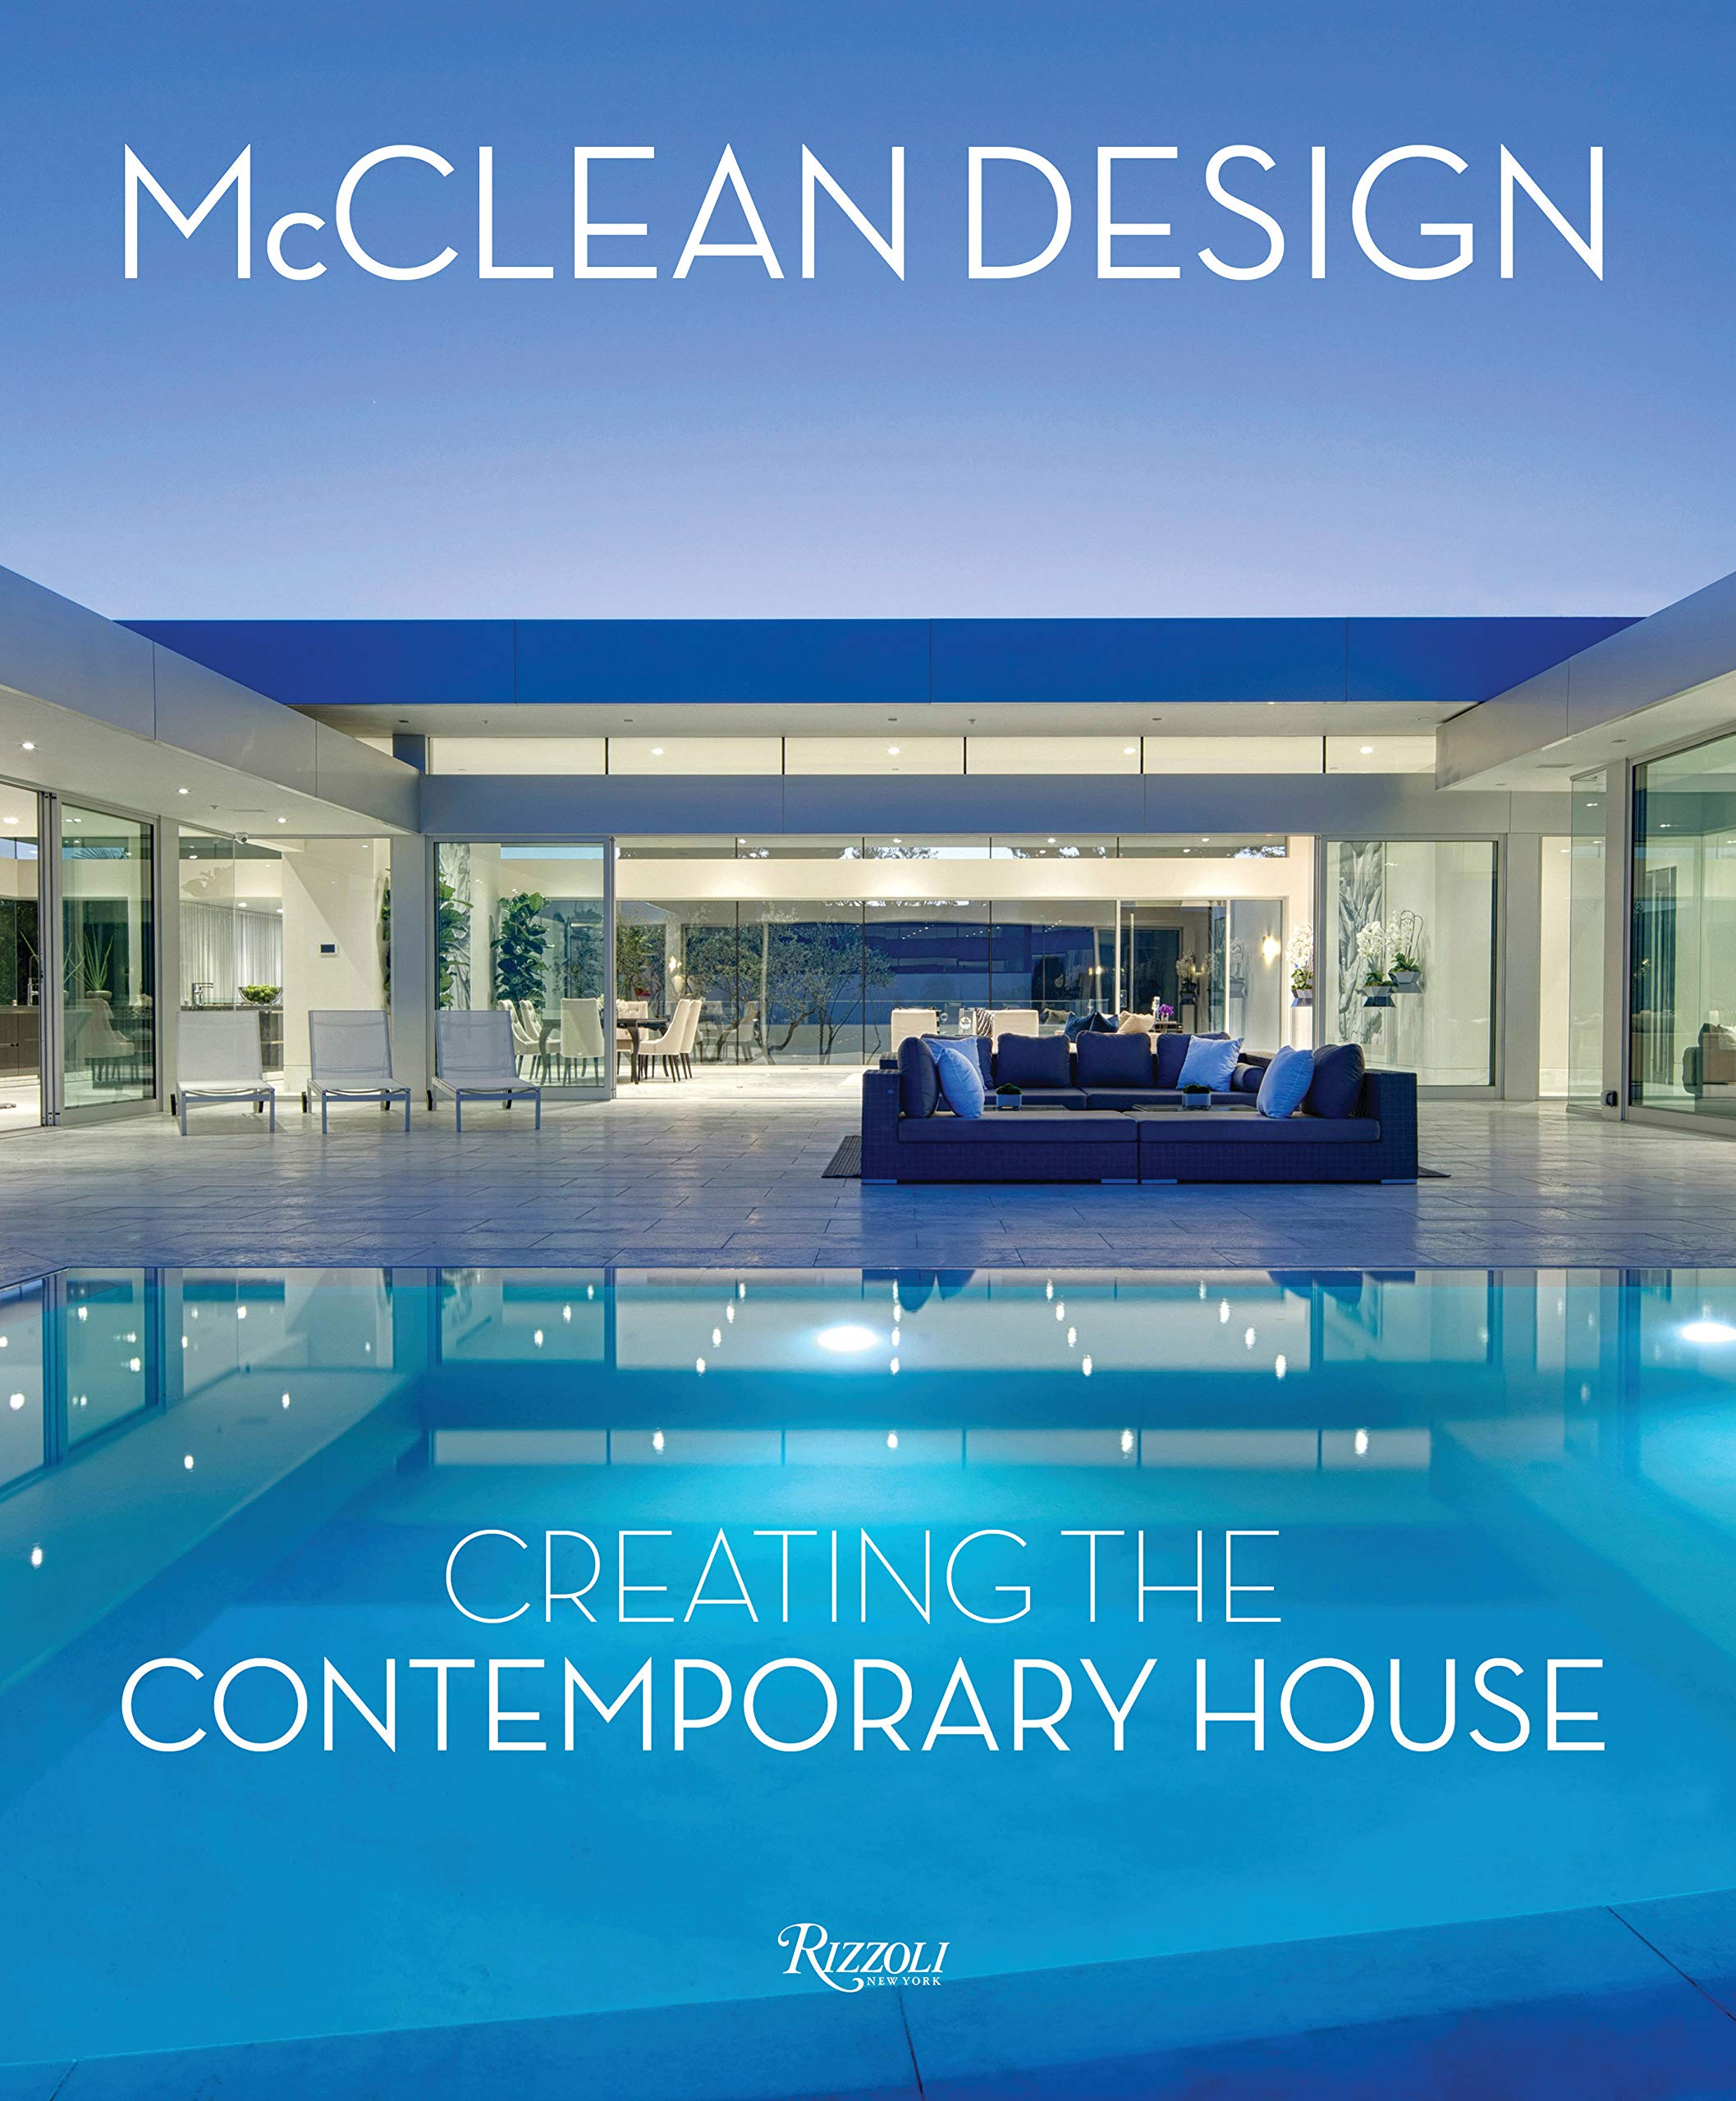 McClean Design: Creating the Contemporary House by Rizzoli